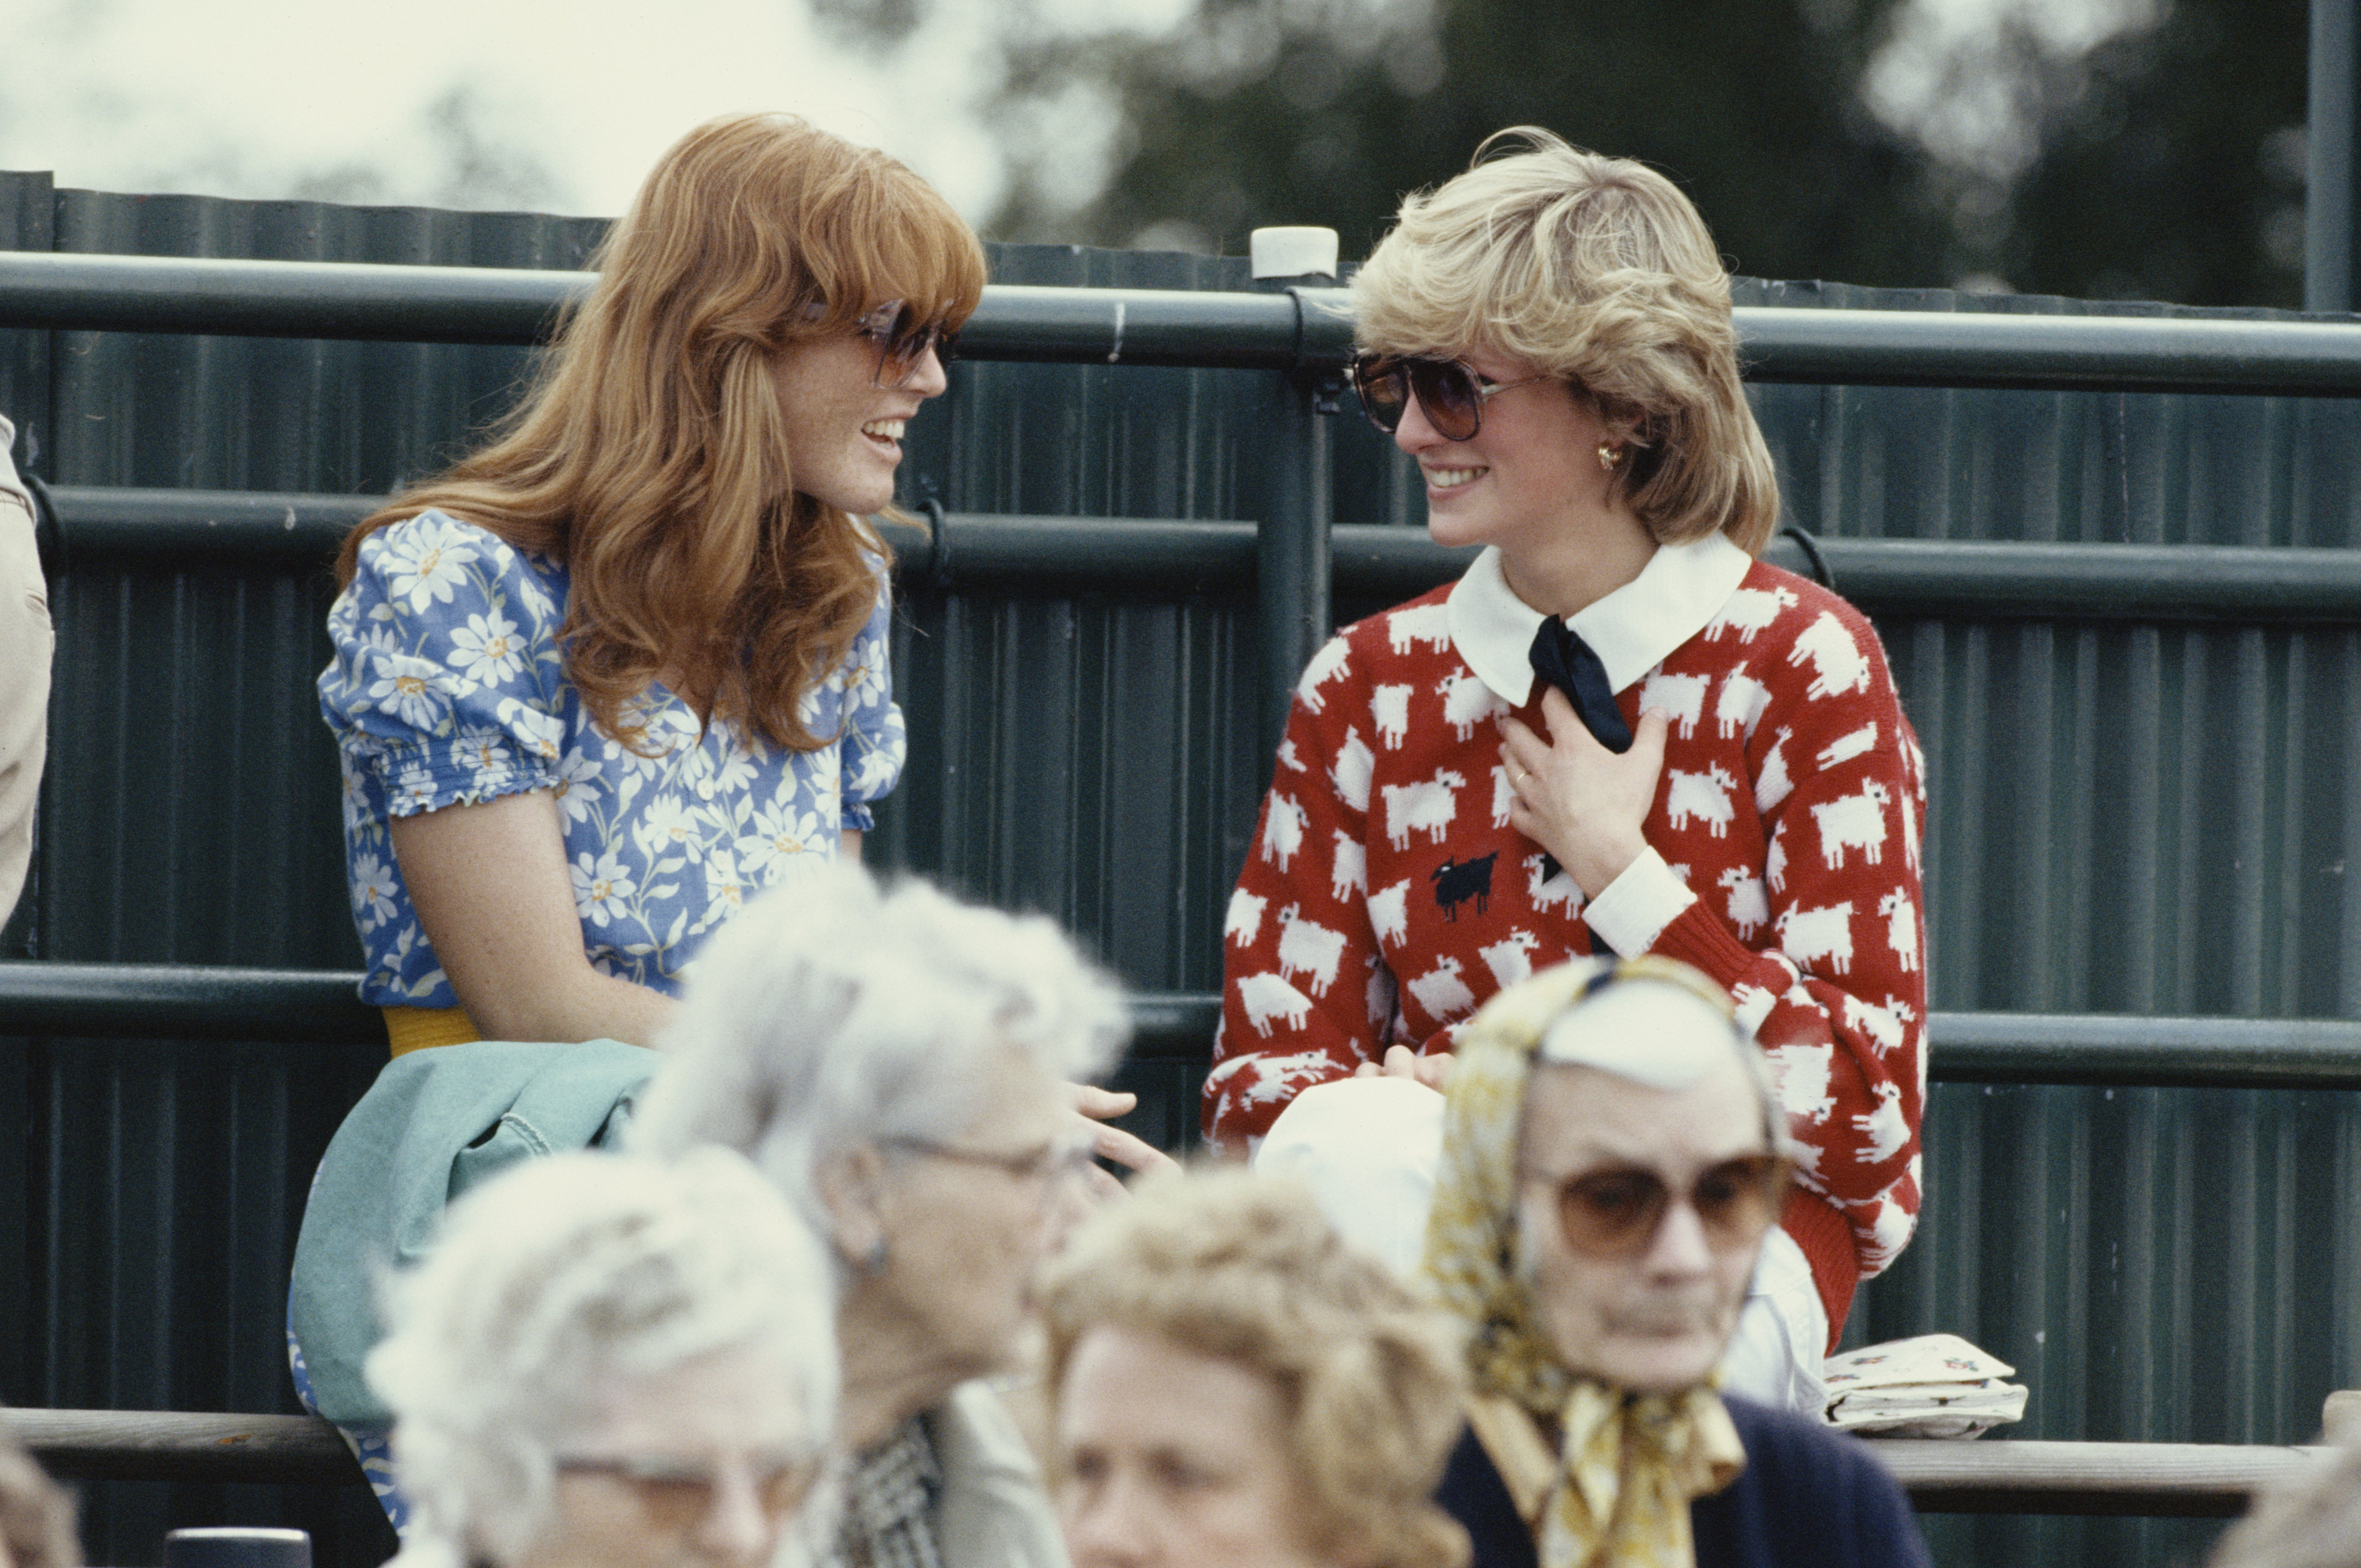 Diana, Princess of Wales (1961 - 1997) with Sarah Ferguson at the Guard's Polo Club, Windsor, June 1983   Photo: Getty Images